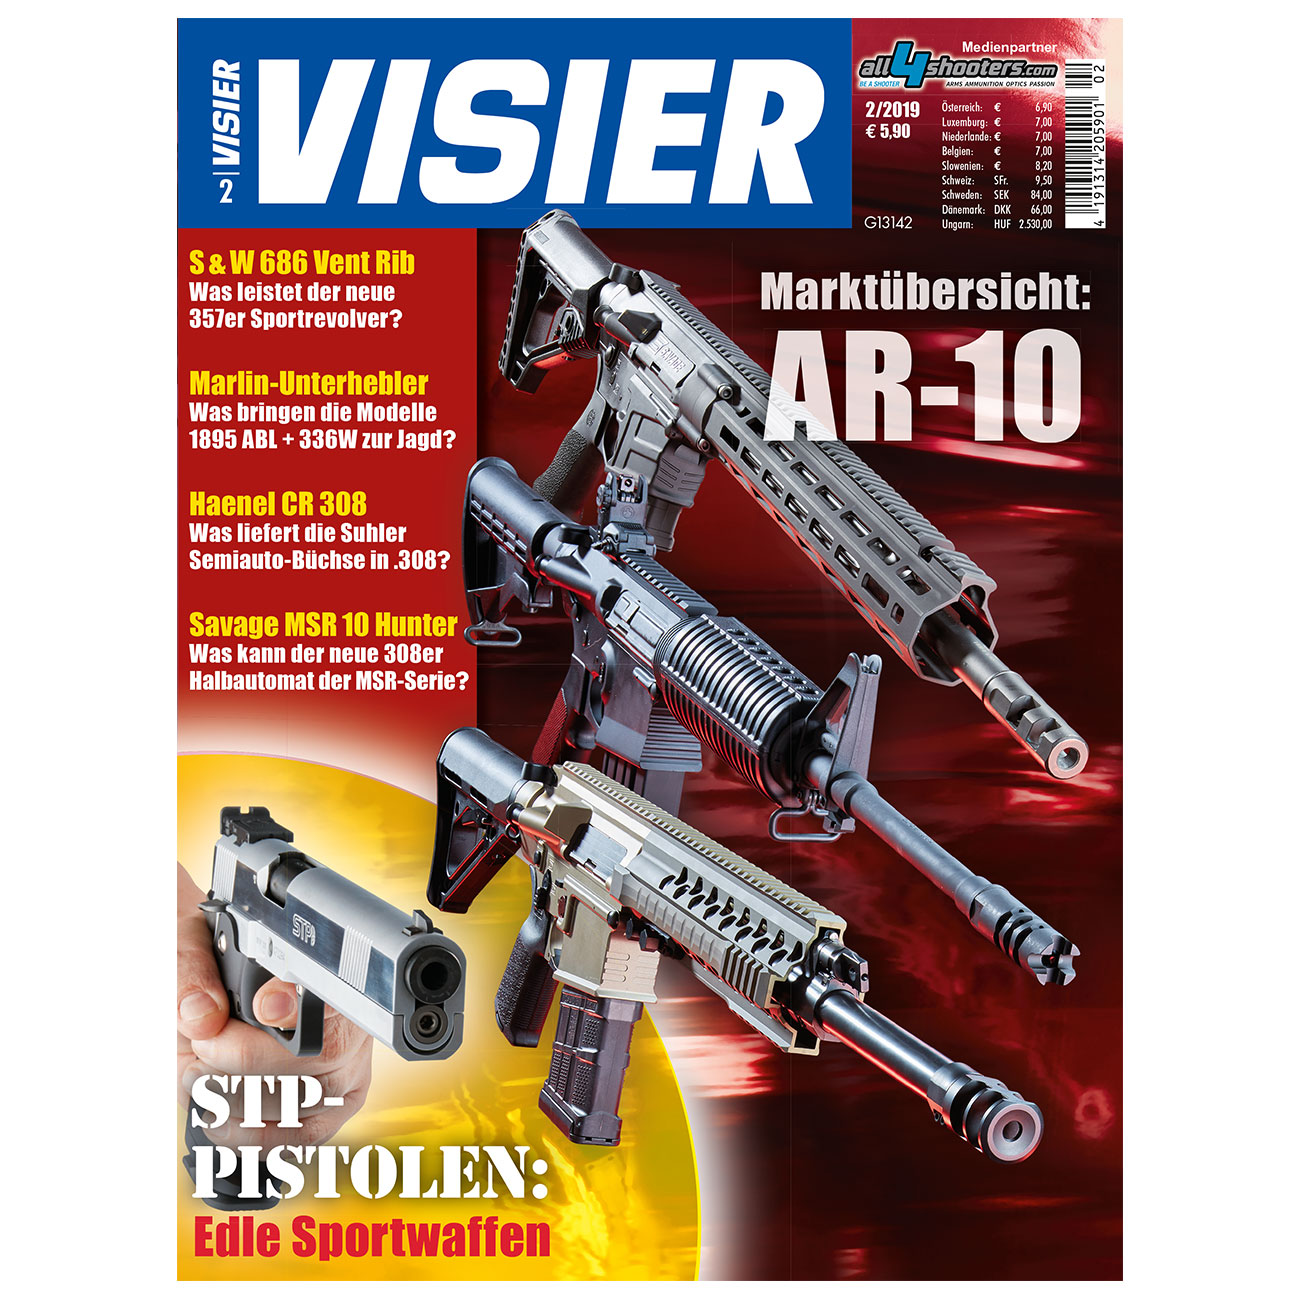 Visier - Das internationale Waffenmagazin 02/2019 0